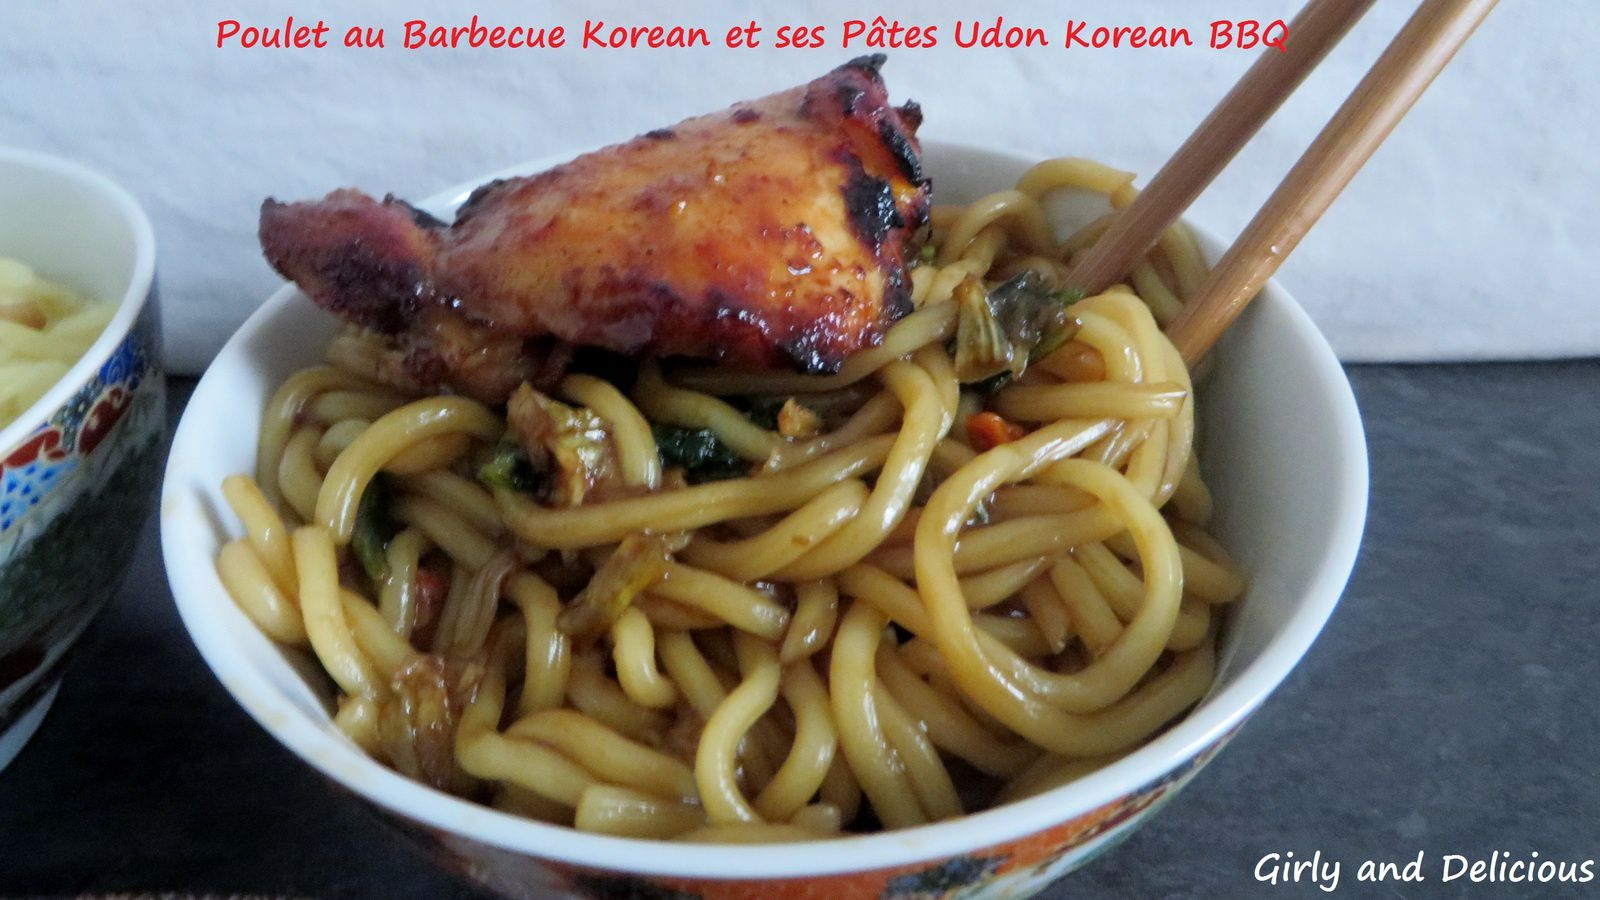 Poulet au Barbecue Korean et ses Pâtes Udon  Korean BBQ et Ramen Korean Boeuf